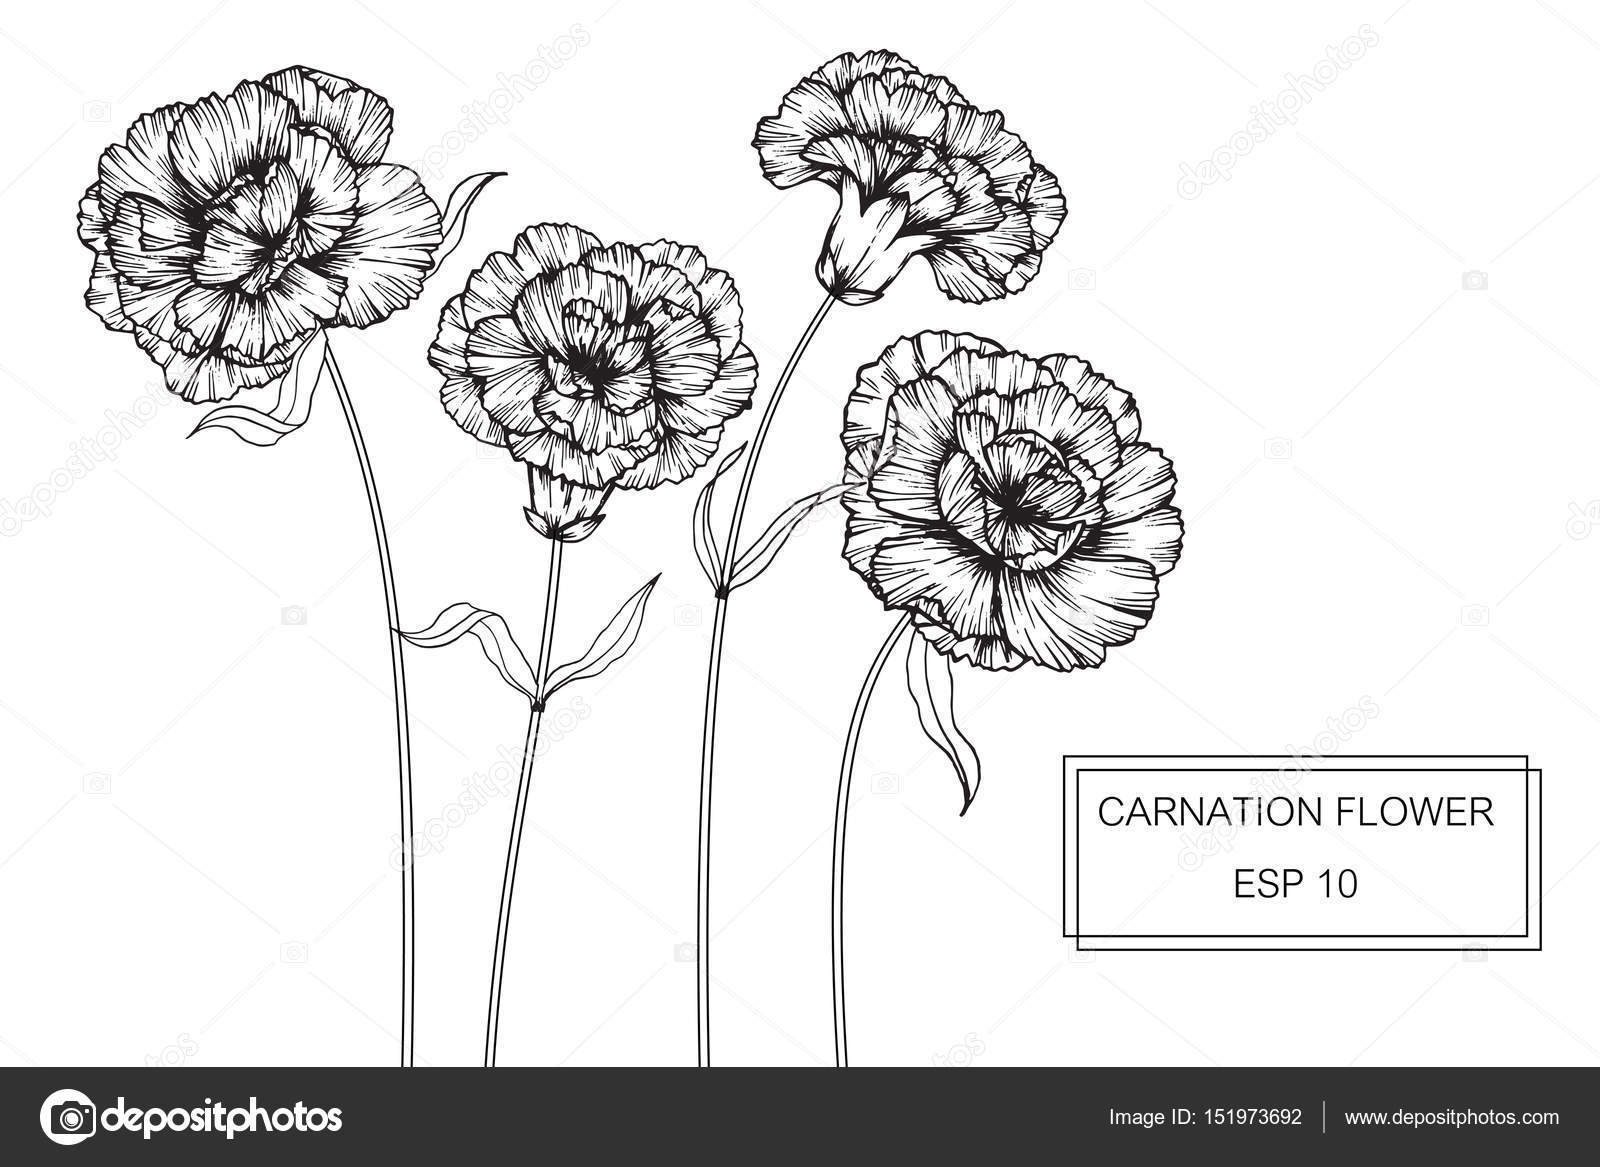 Carnation flowers drawing and sketch with line art stock vector carnation flowers drawing and sketch with line art on white backgrounds vector by suwi19 ccuart Gallery